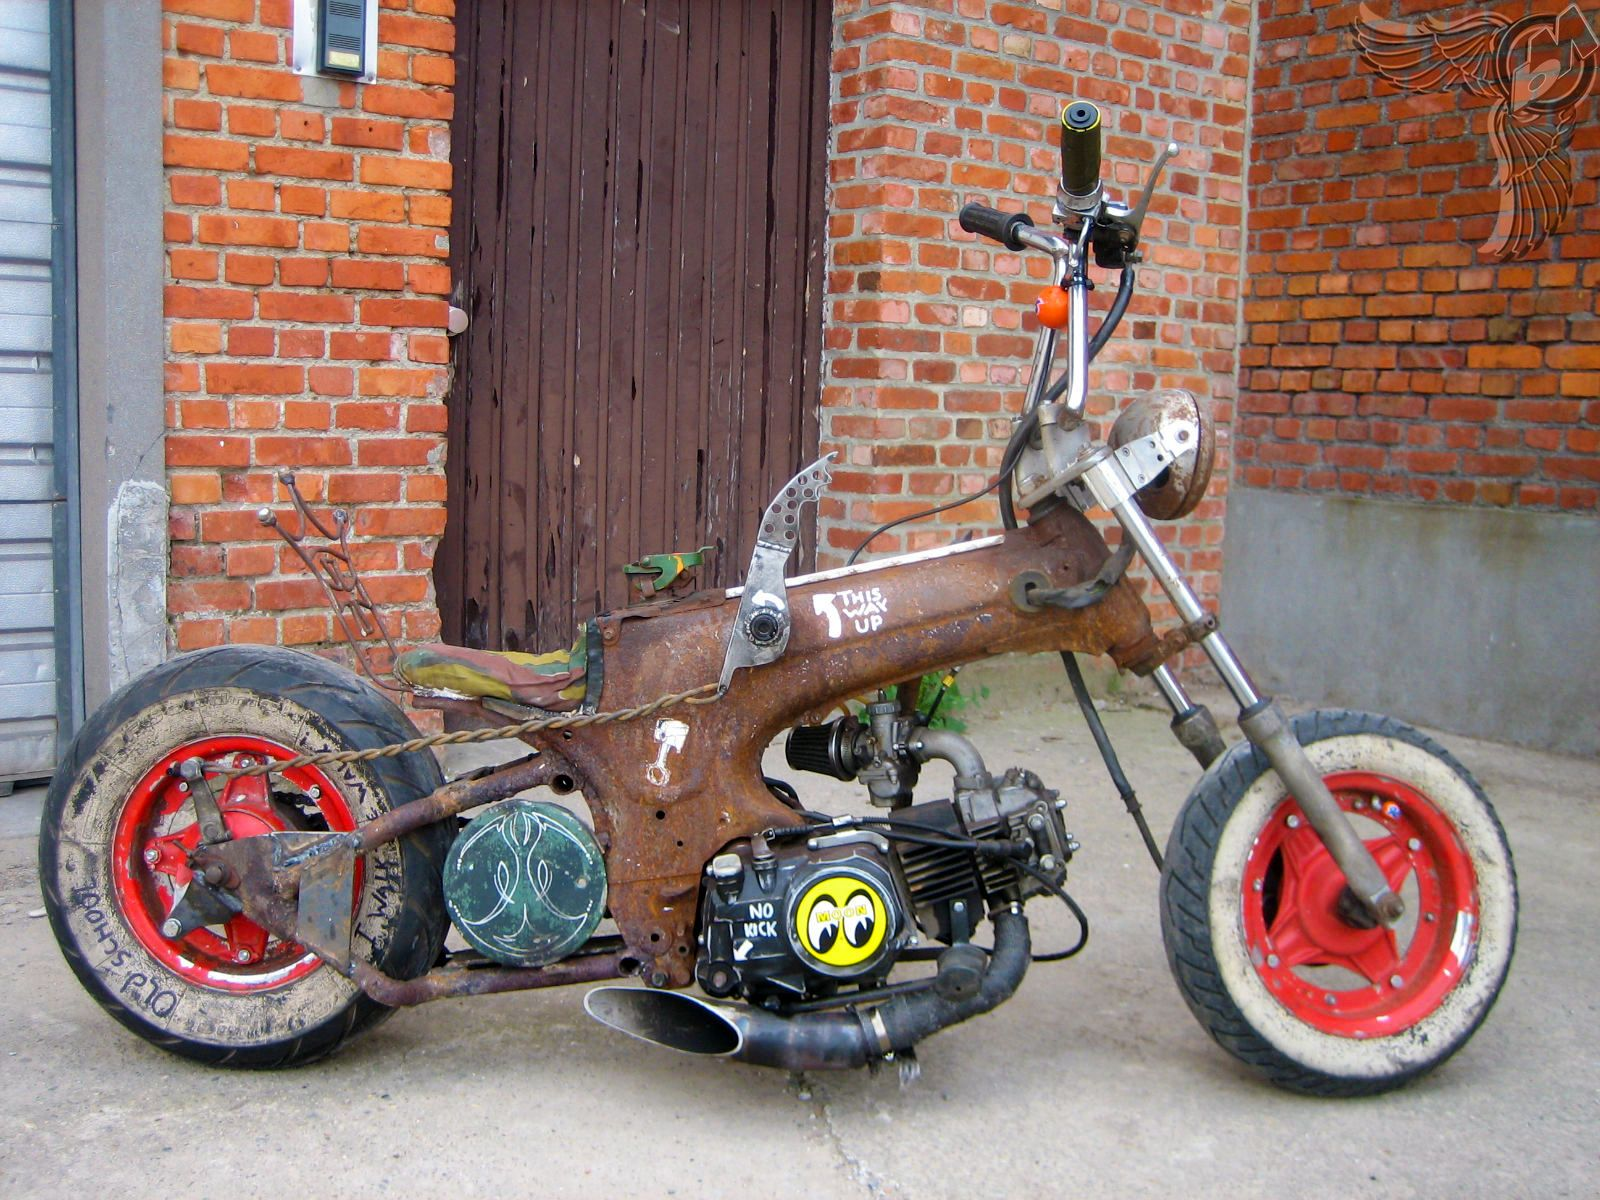 Honda Rat Chopper